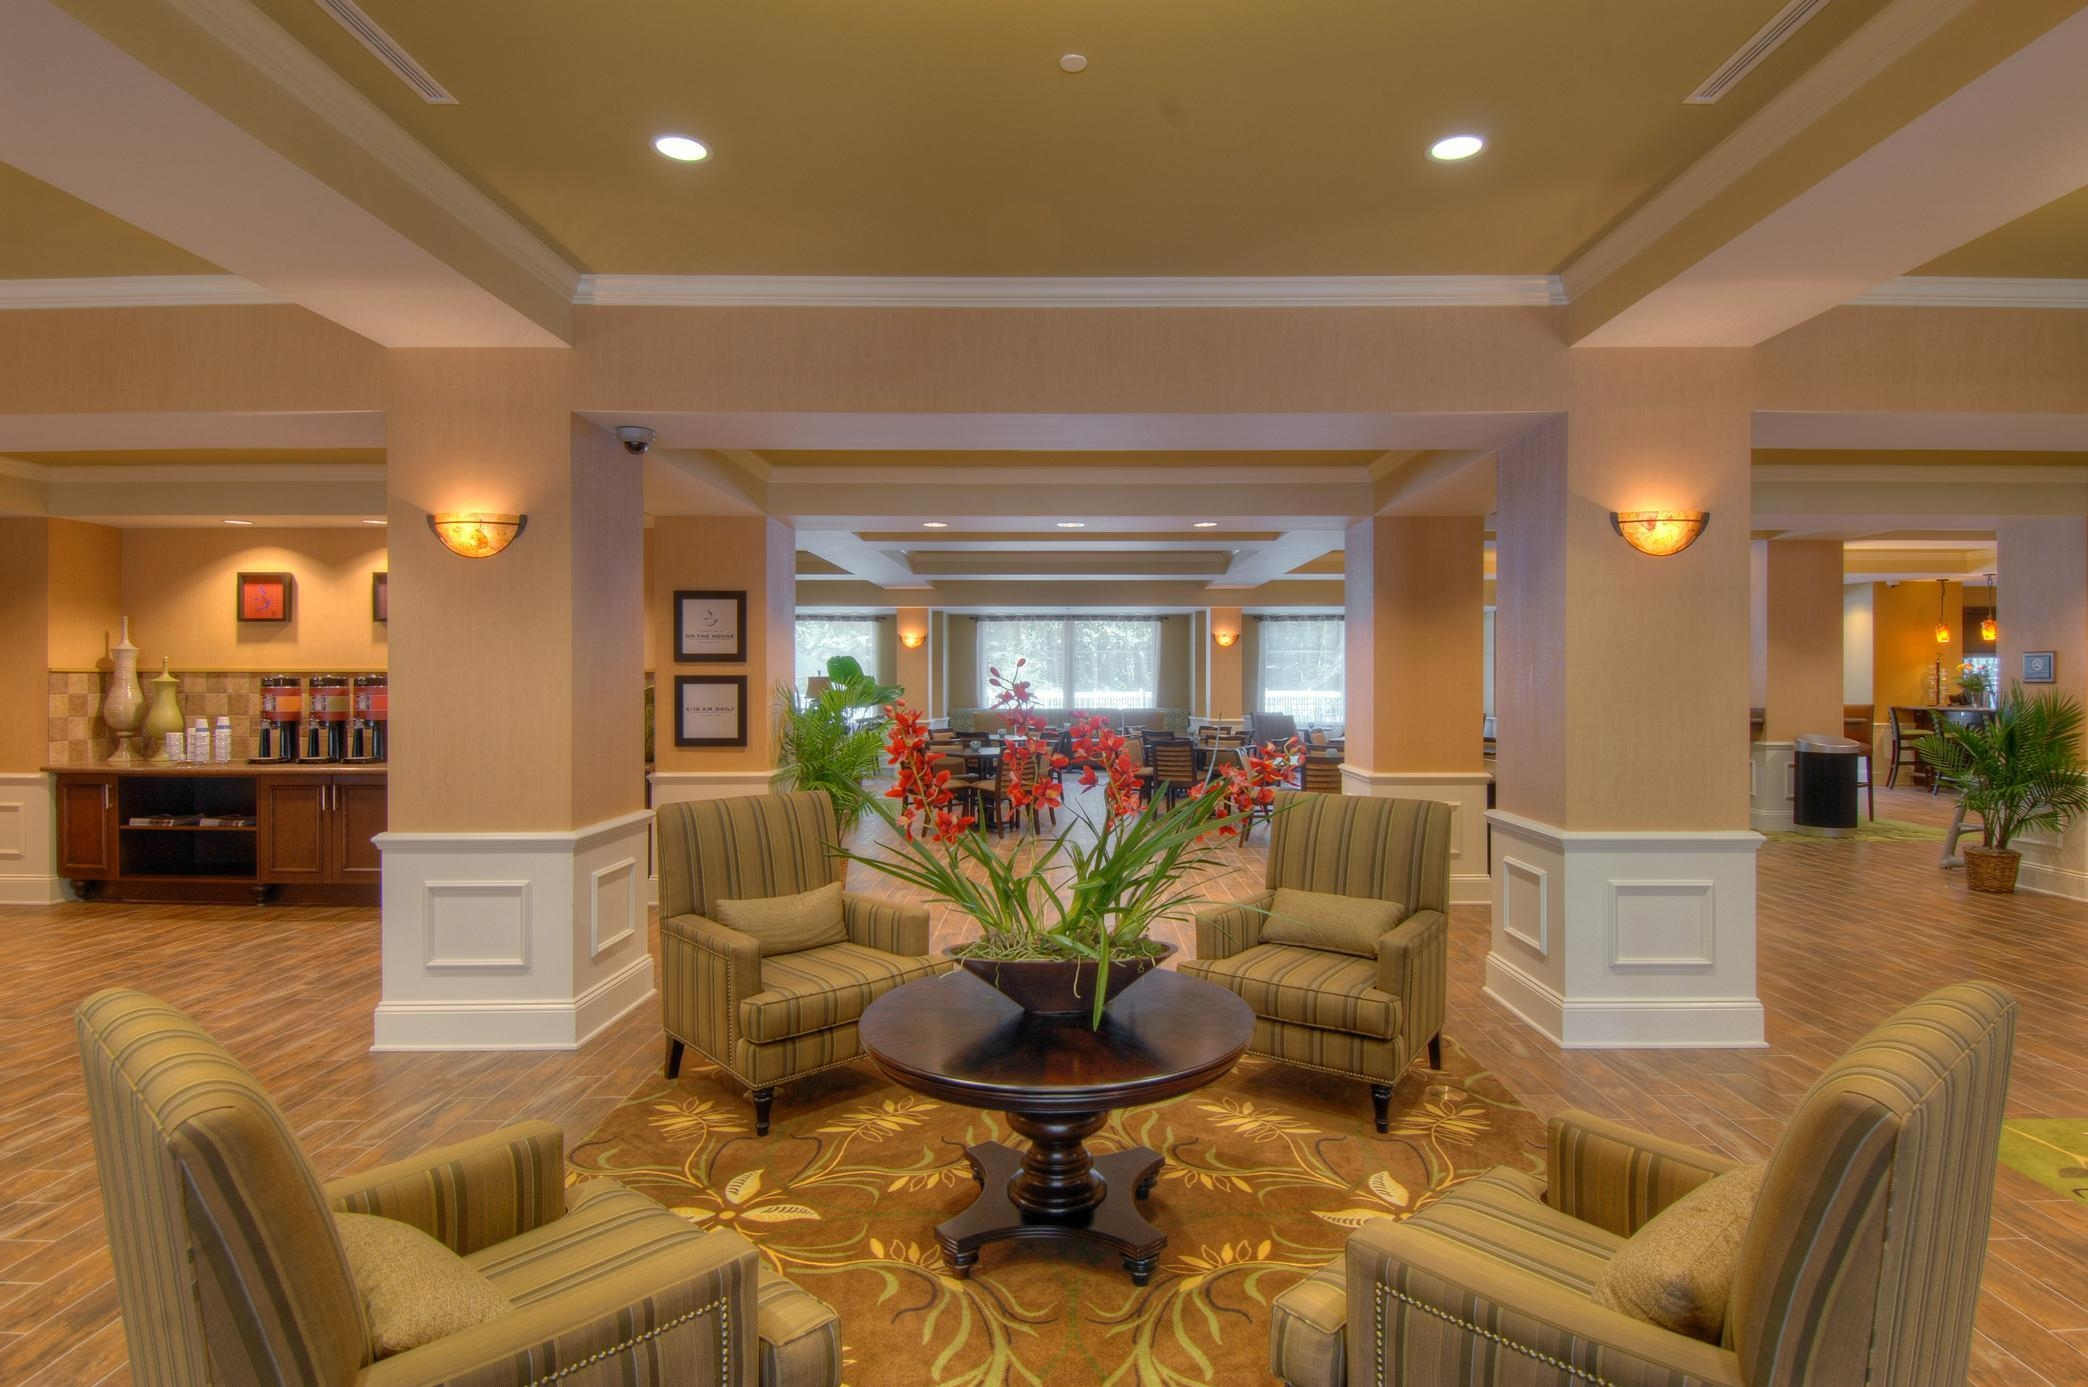 Rooms: Hampton Inn & Suites Jekyll Island In Jekyll Island, GA